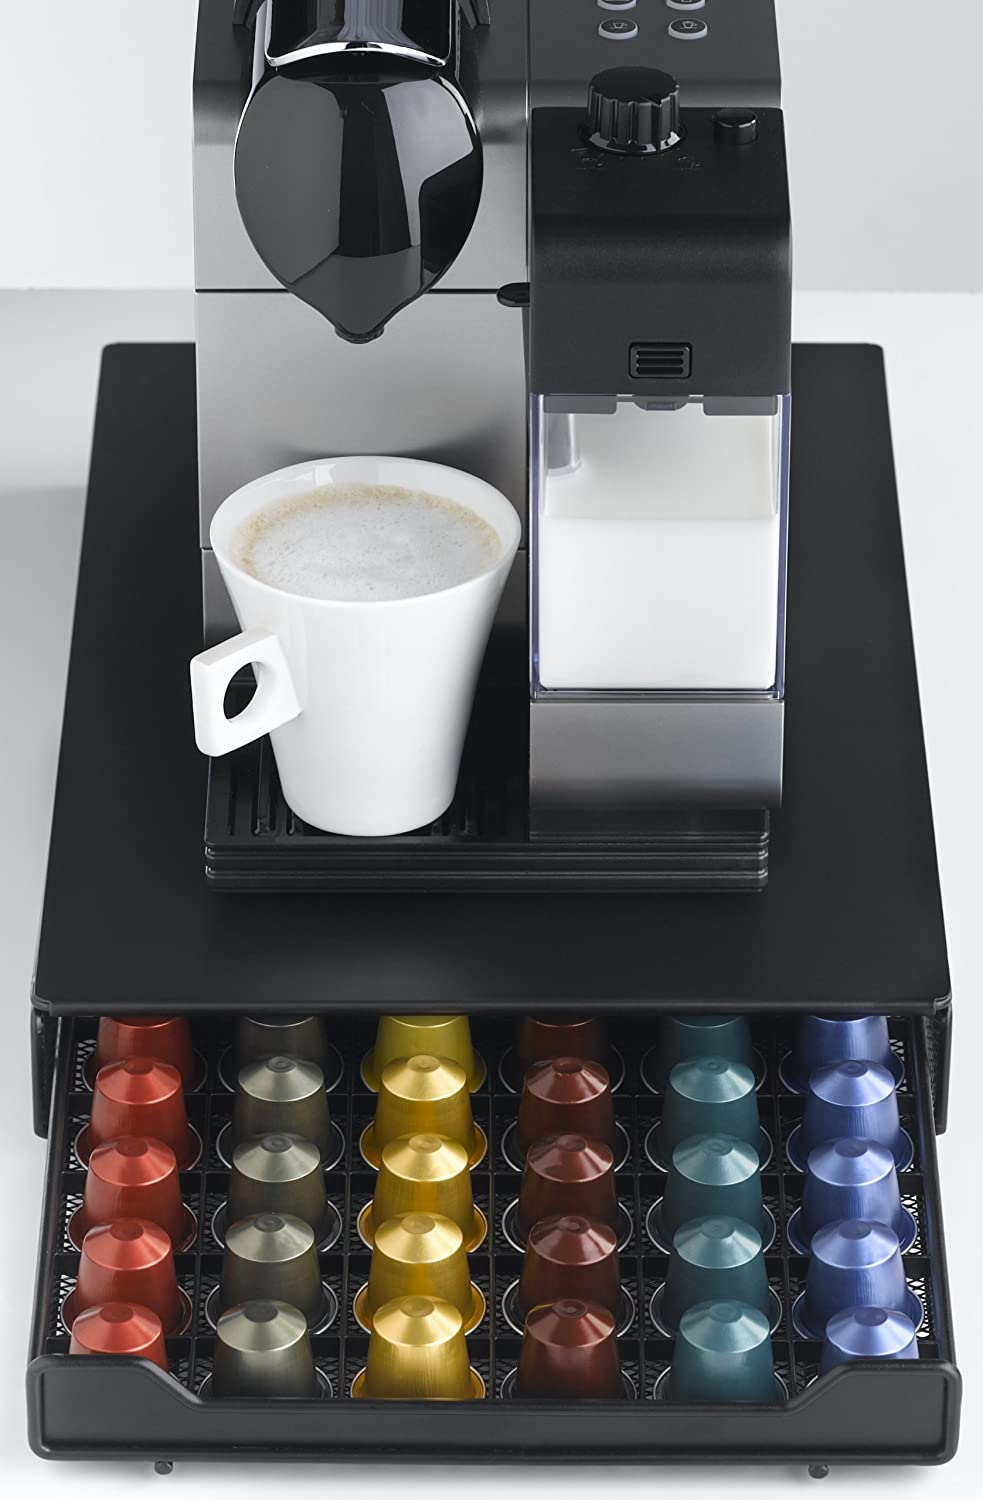 Nifty Nespresso Capsule Drawer...